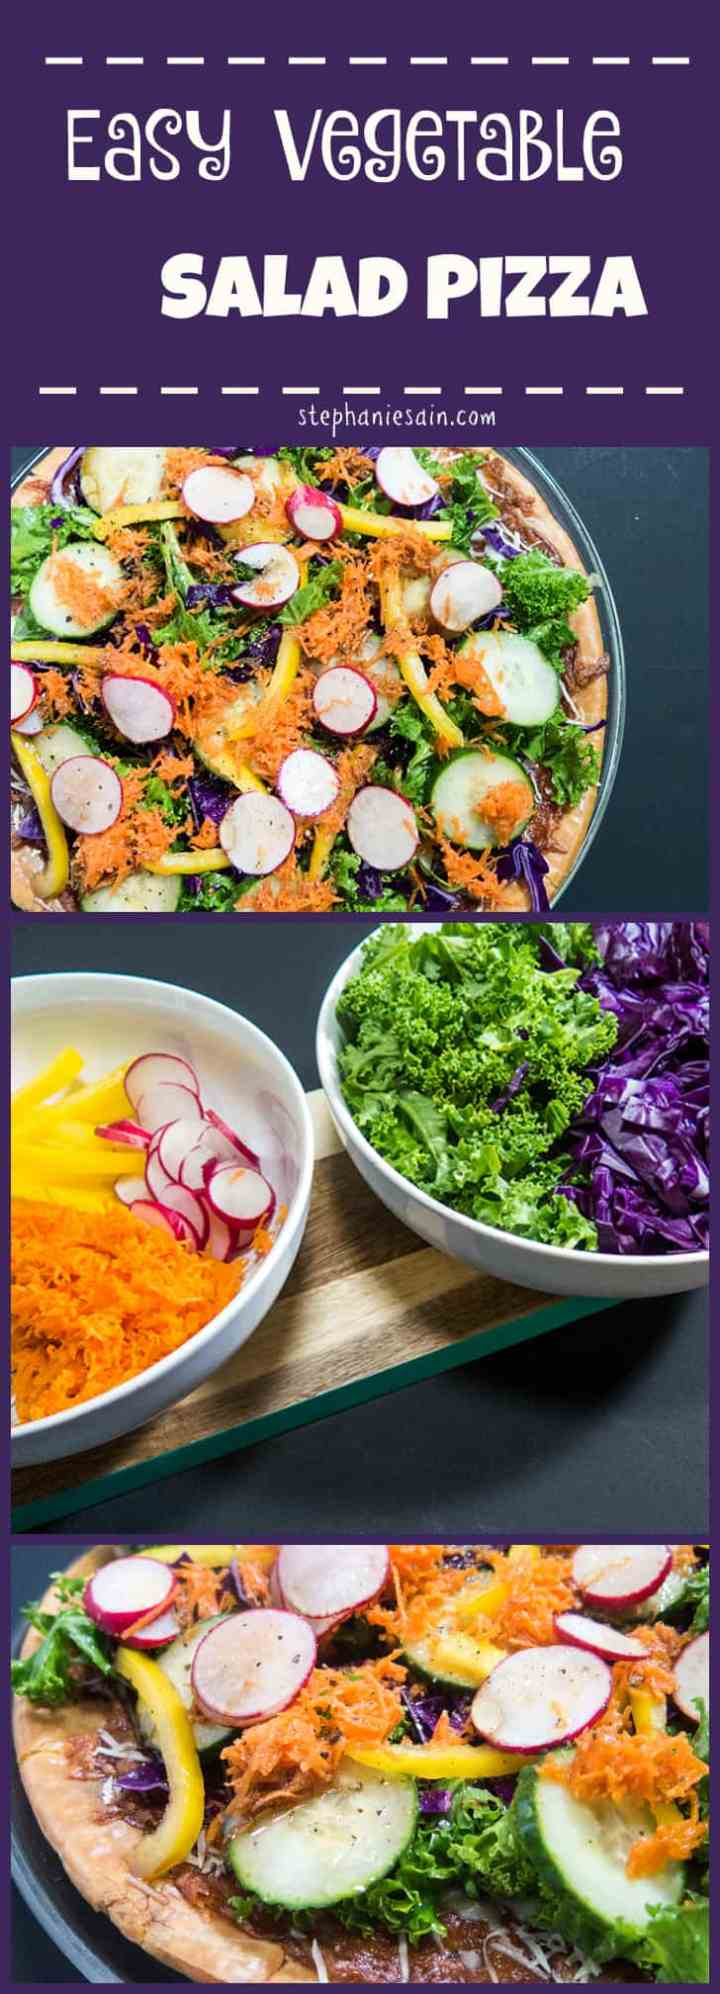 Easy Vegetable Salad Pizza is a quick, tasty pizza to prepare. Customizable with all of your favorite salad toppings. Vegetarian and Gluten Free.